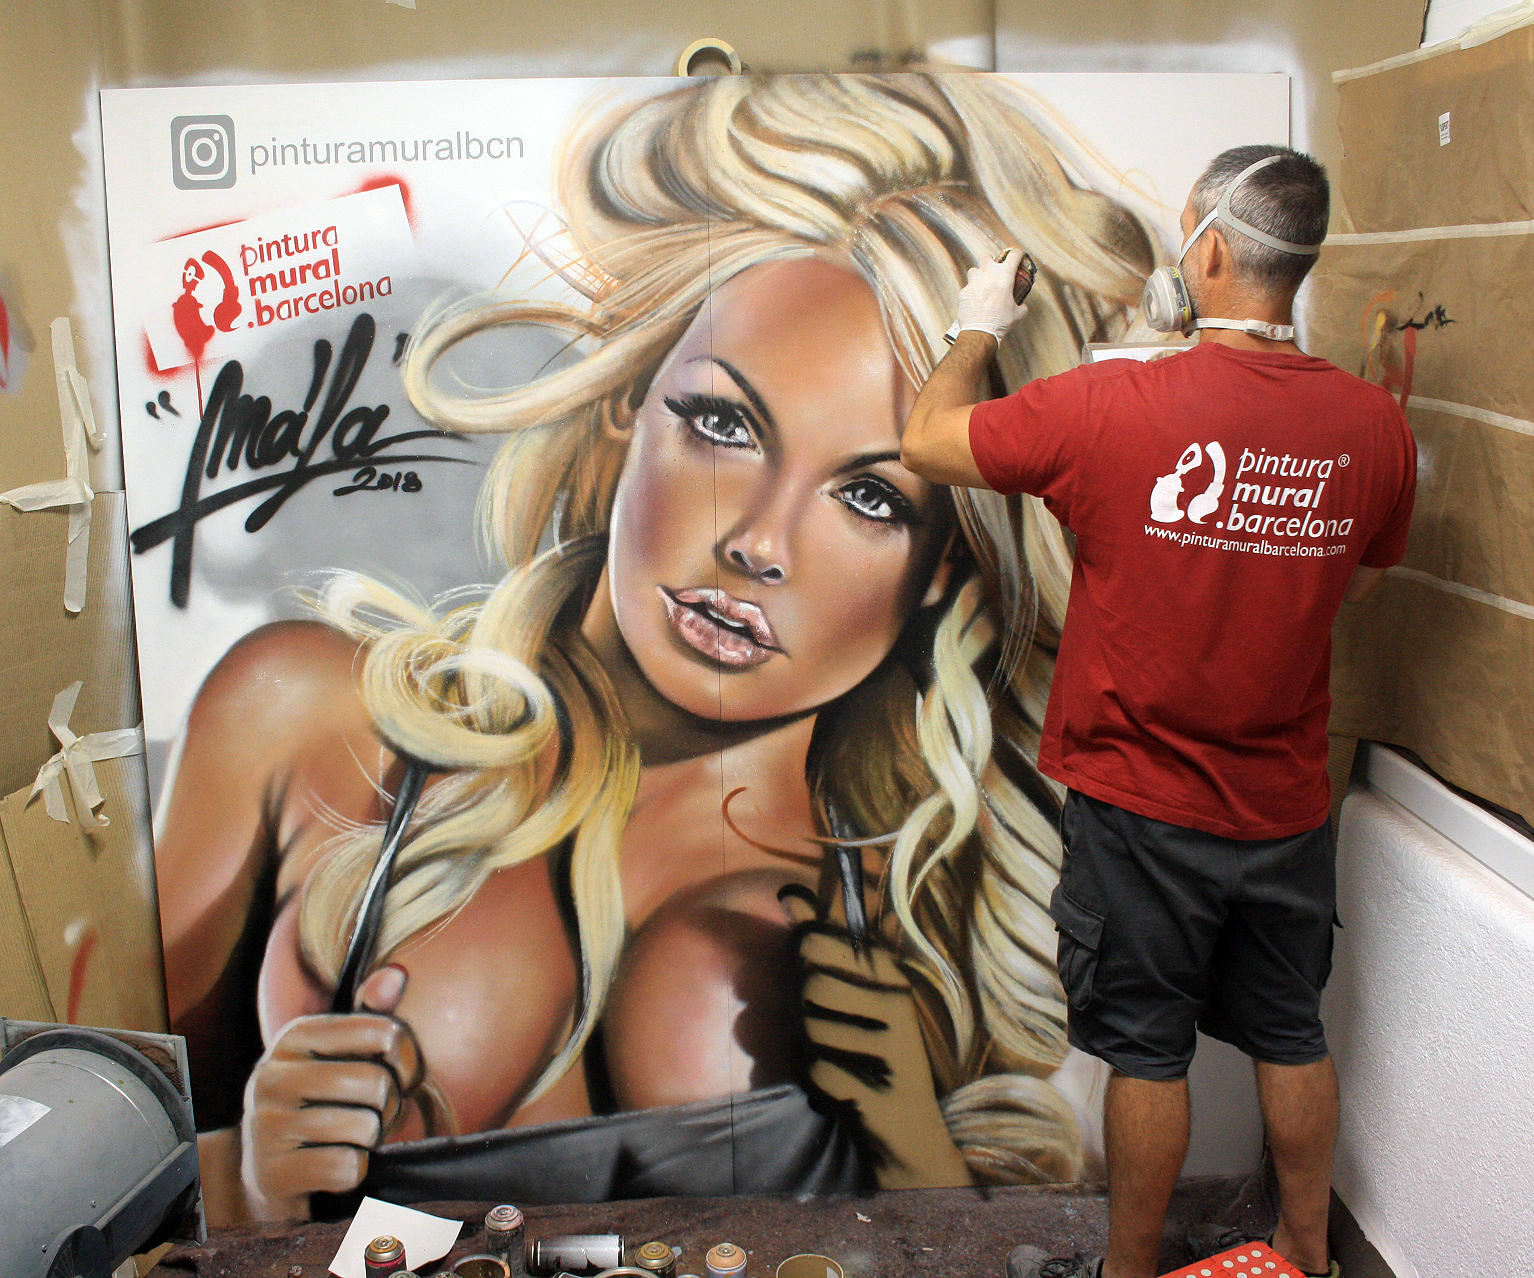 Mateo Lara (creative and muralist)